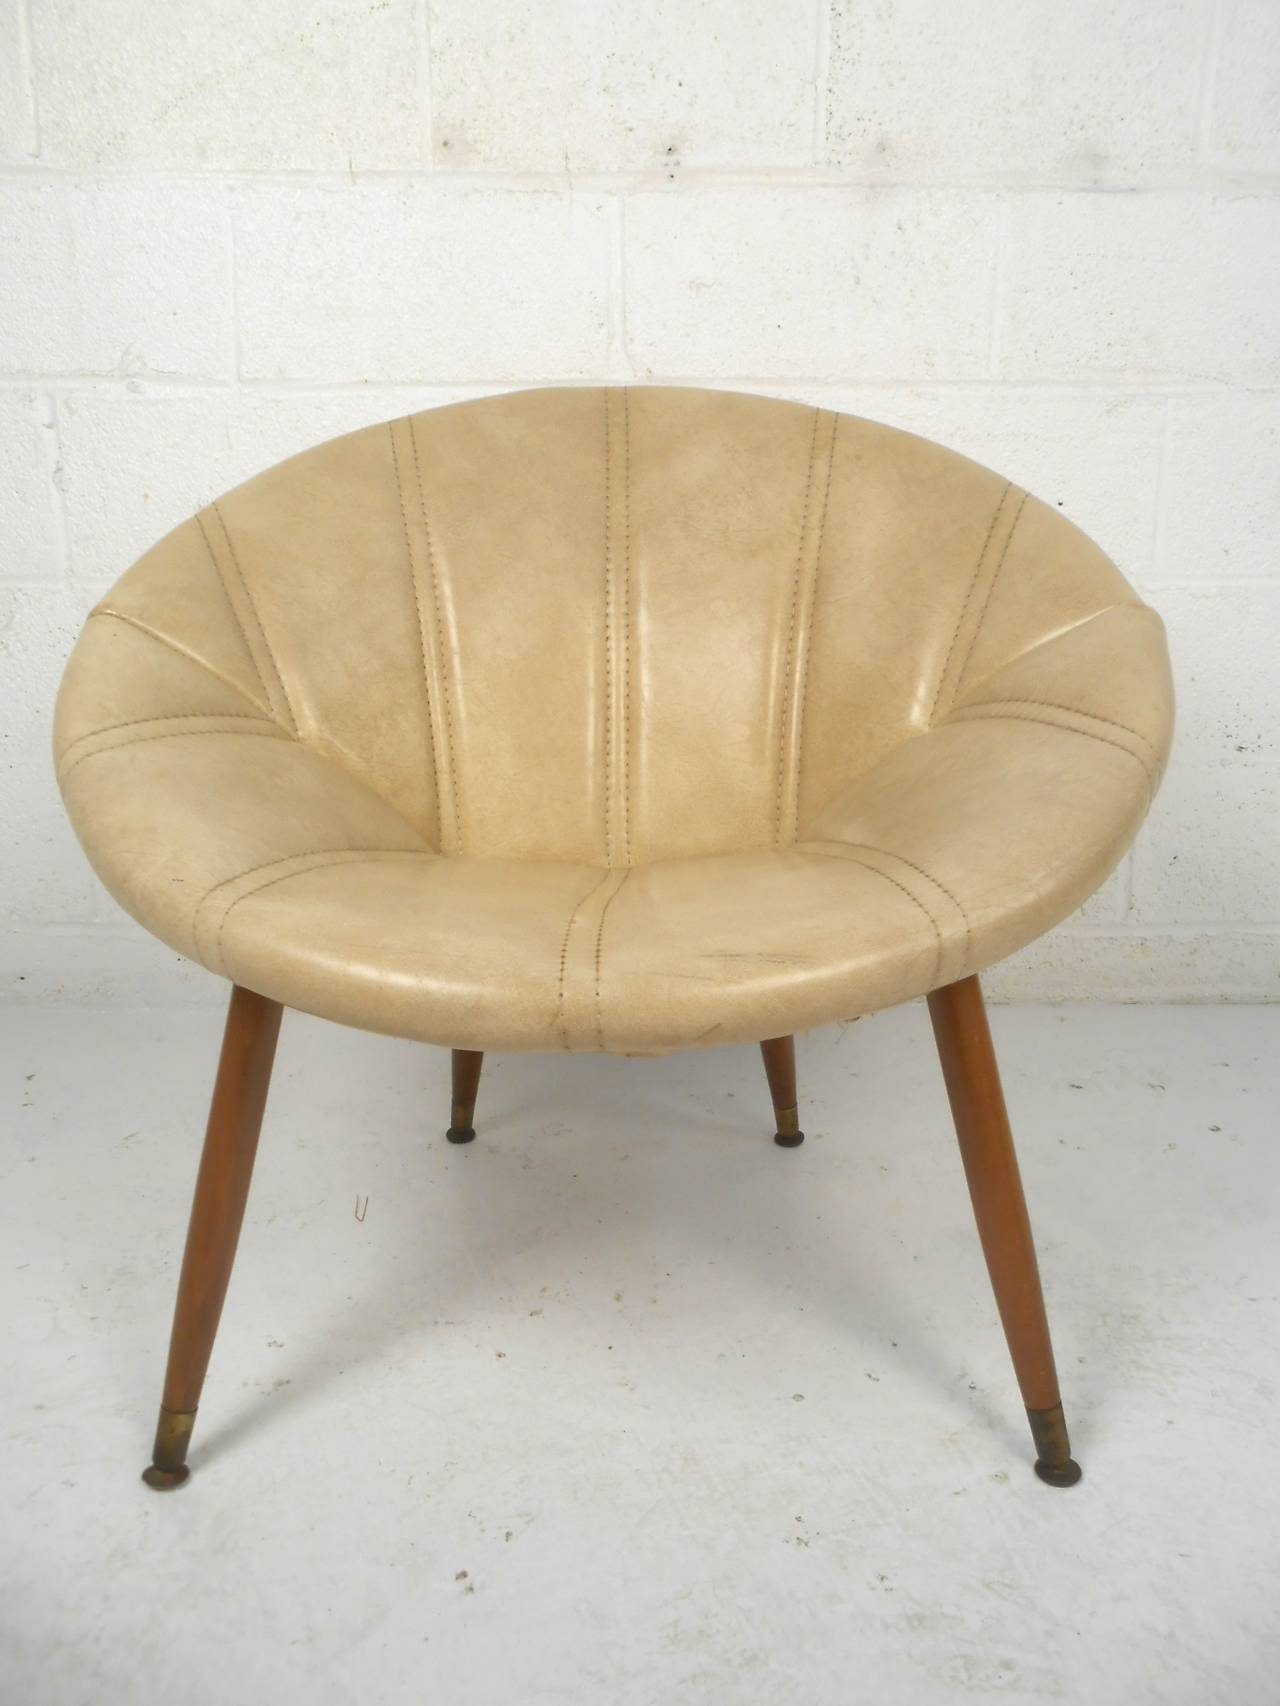 Mid century modern round midcentury saucer chair for sale